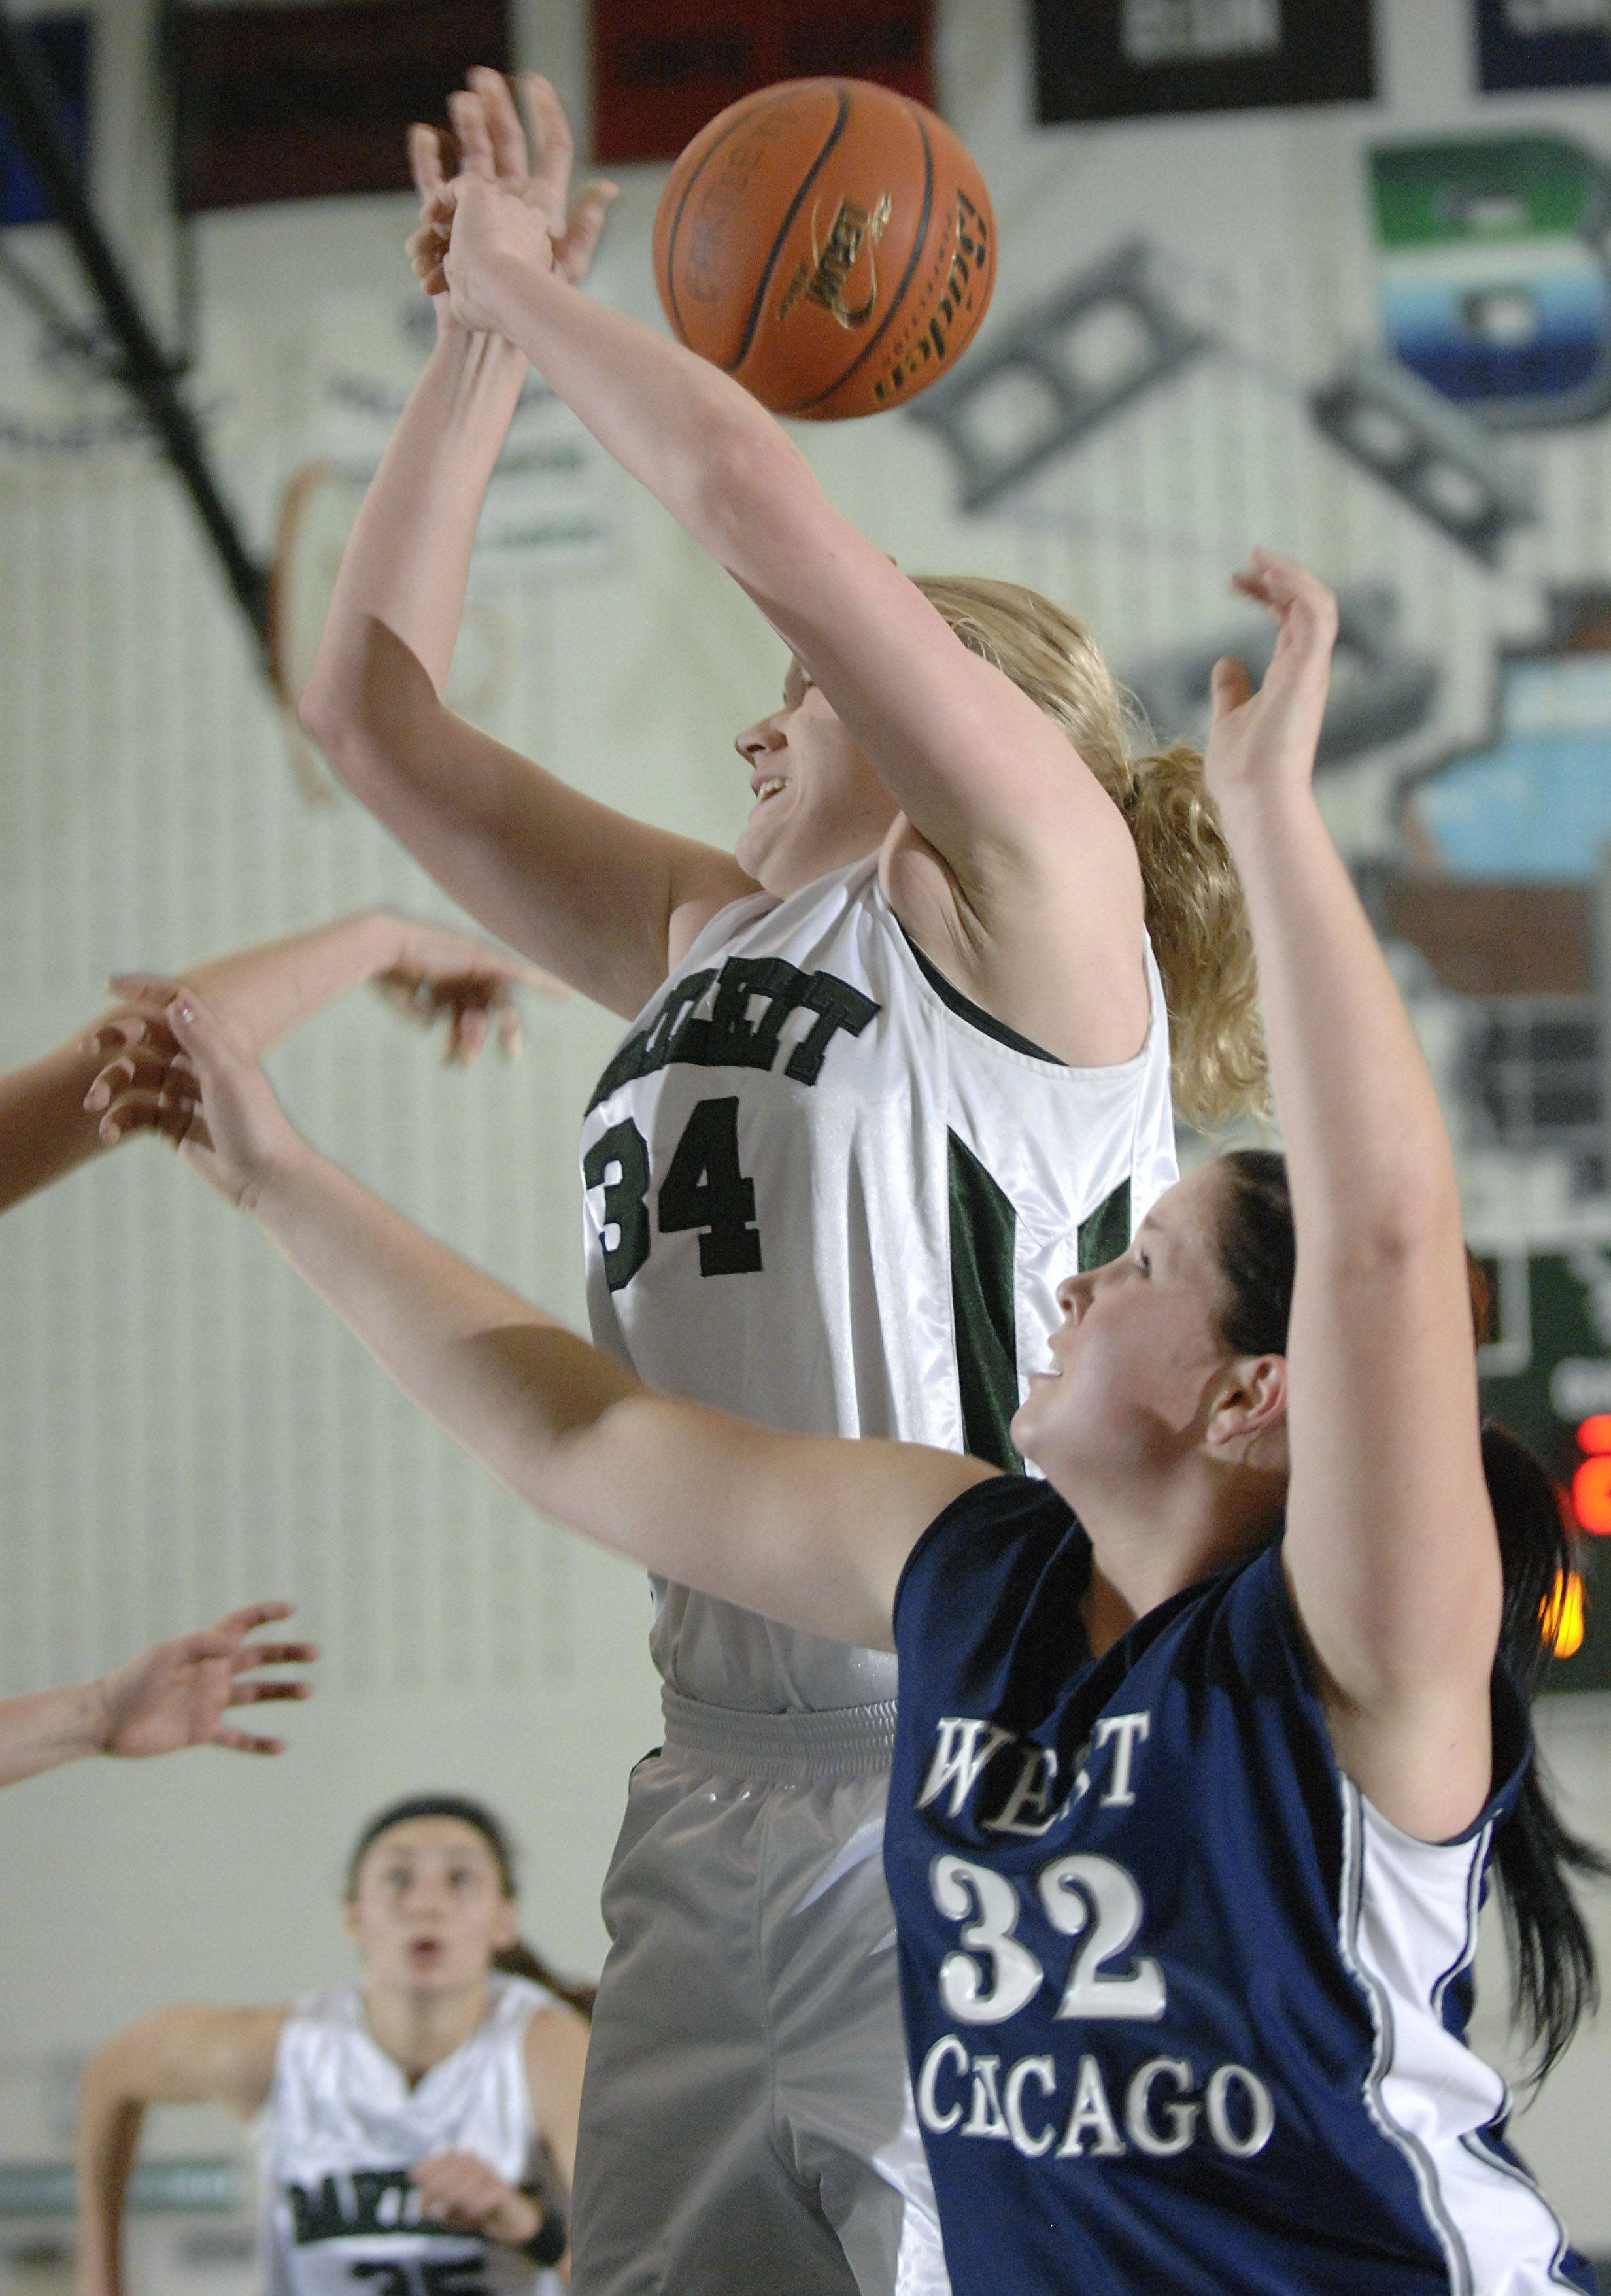 Bartlett's Christina Carlson is fouled by West Chicago's Kelsey Myers in the second quarter on Saturday, December 18.